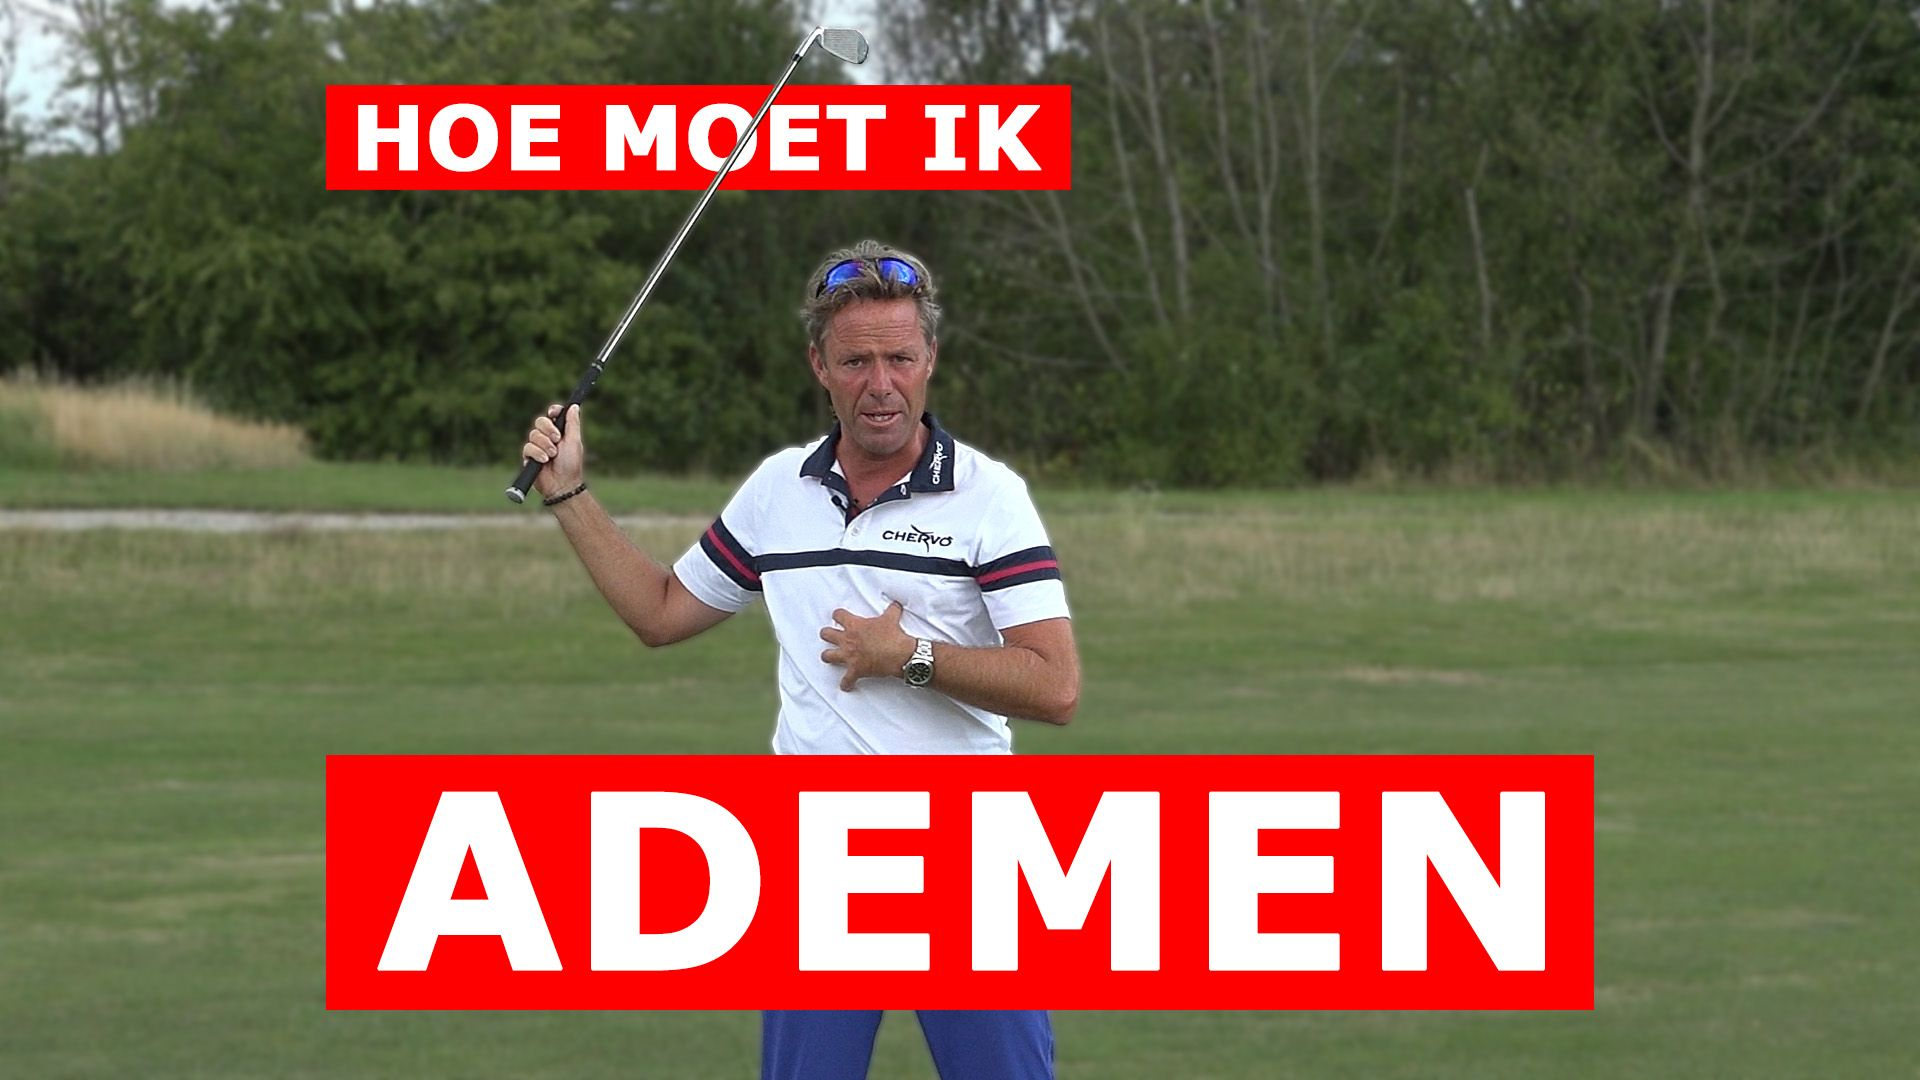 Verbeter jouw golf swing door correct te ademen - Video - Blog